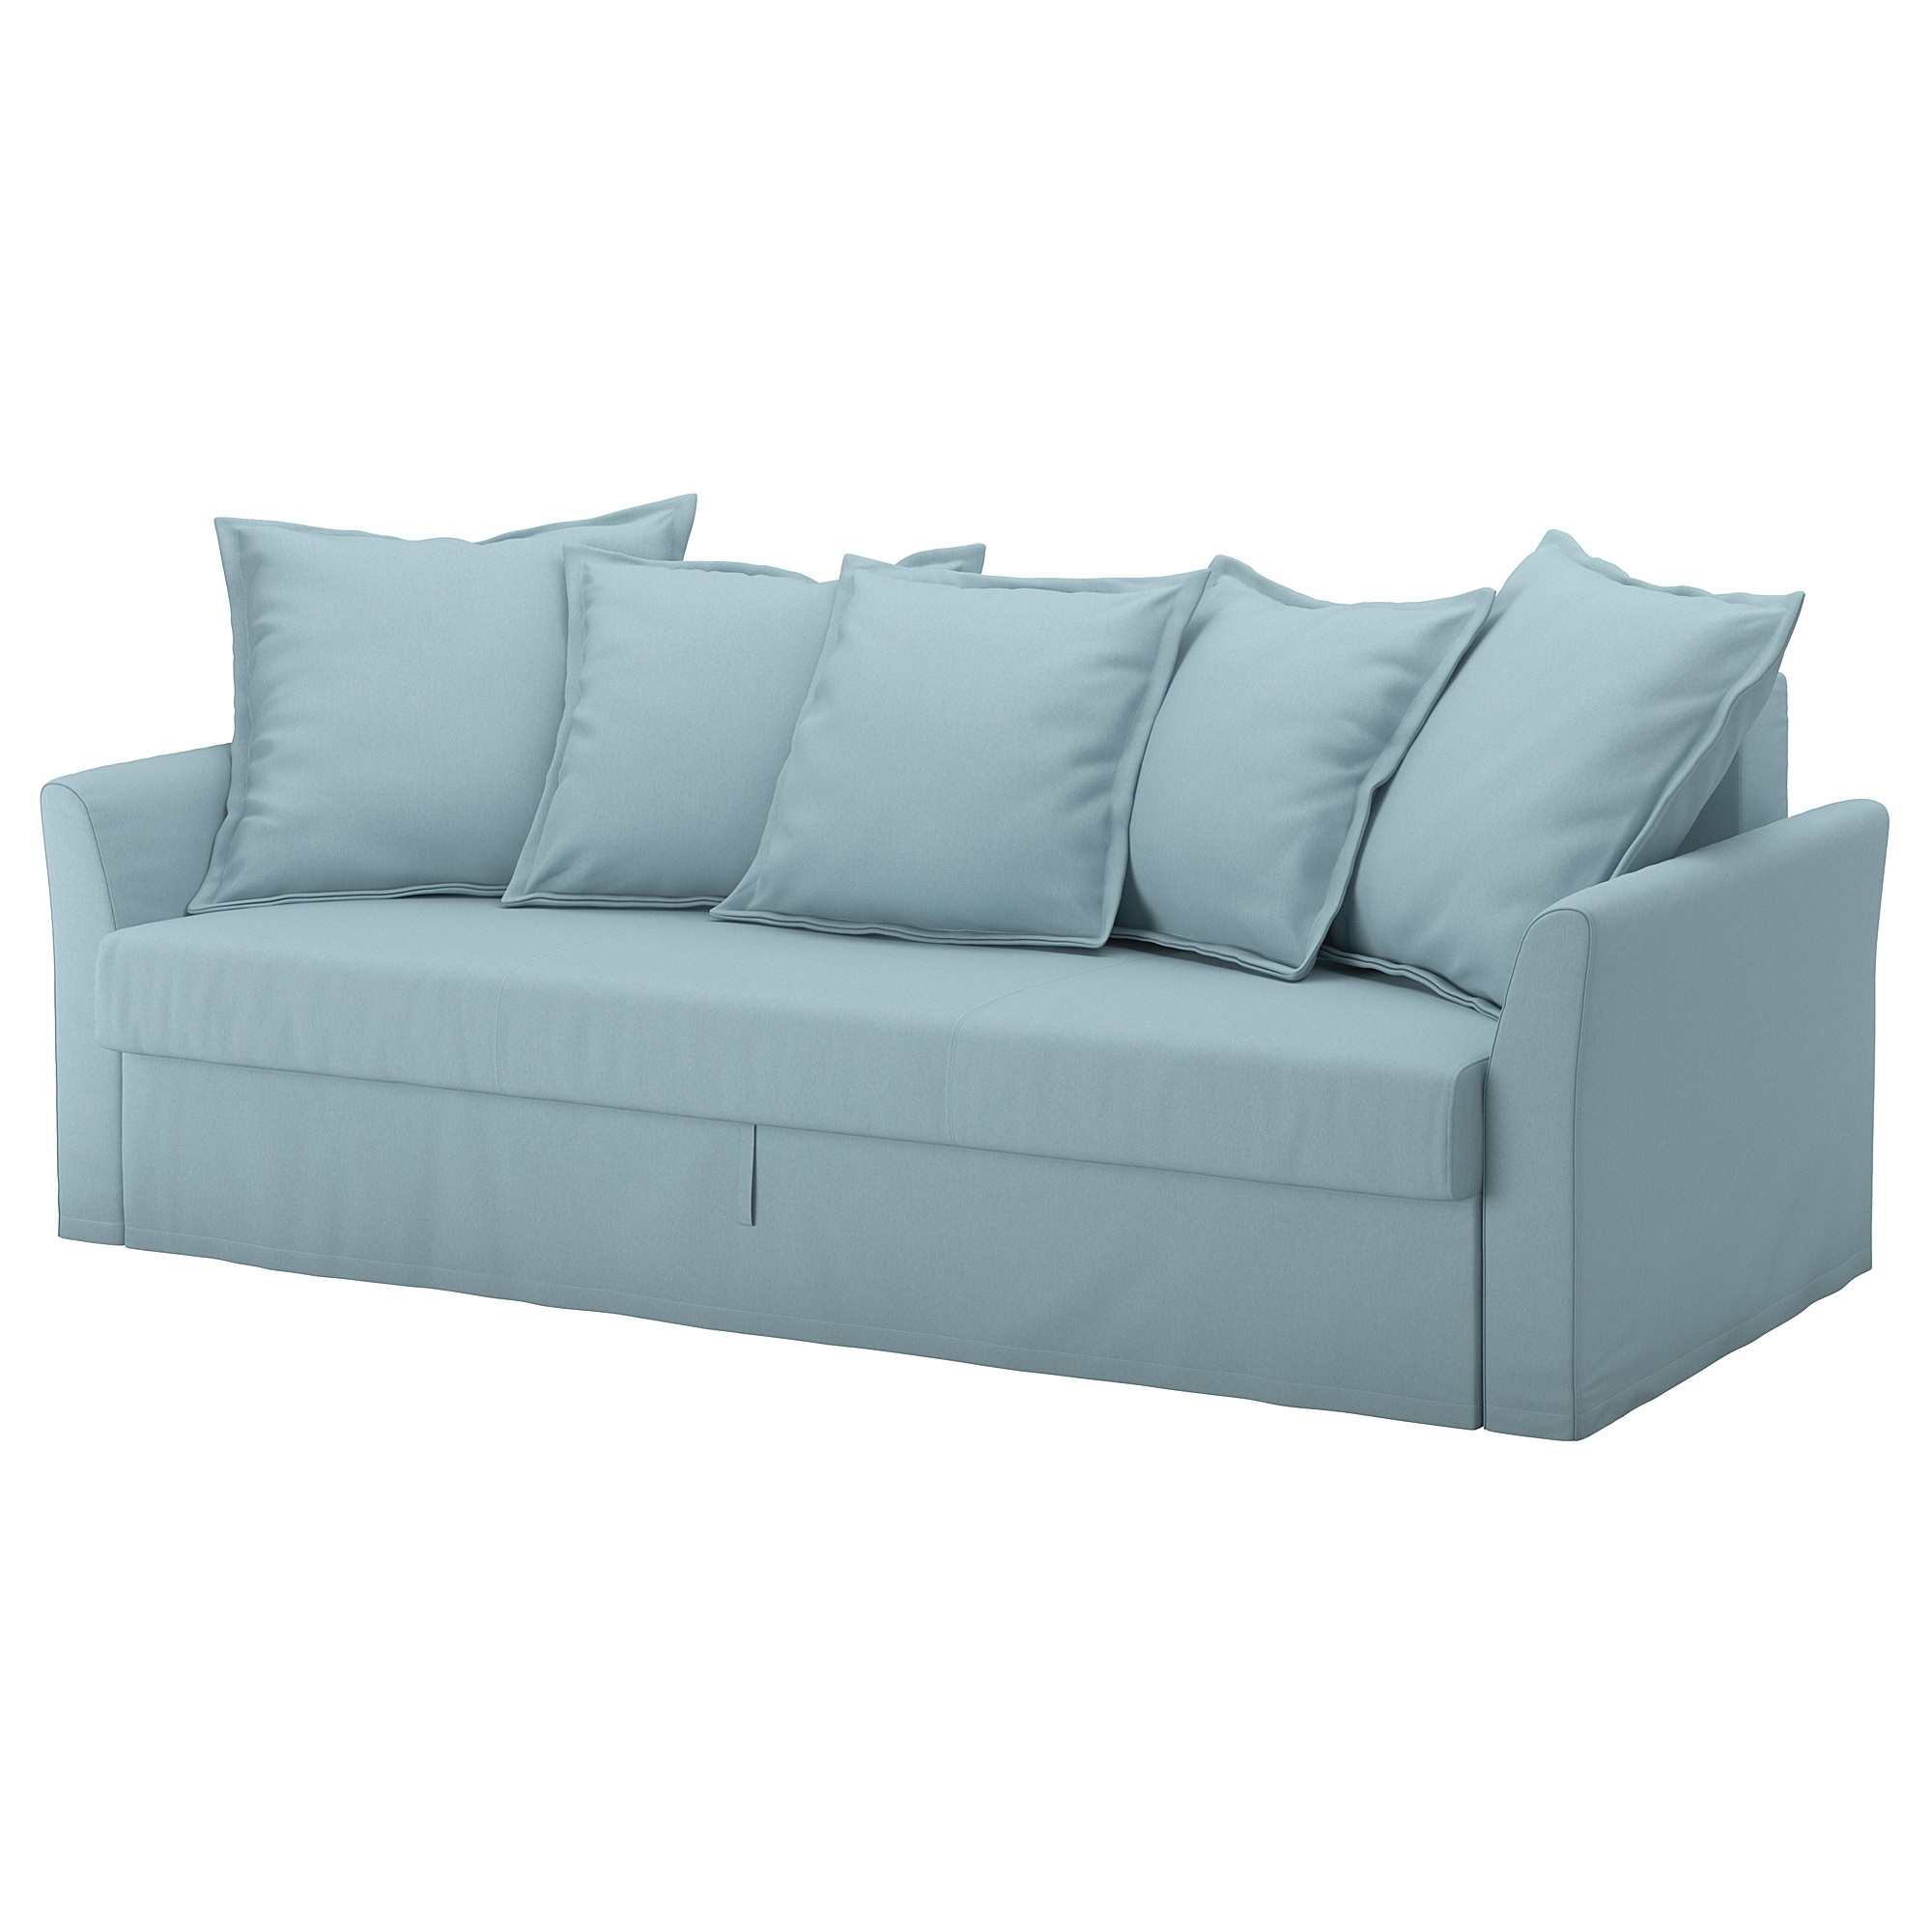 HOLMSUND Sleeper Sofa, Orrsta Light Blue Height Including Back Cushions: 37  3/4